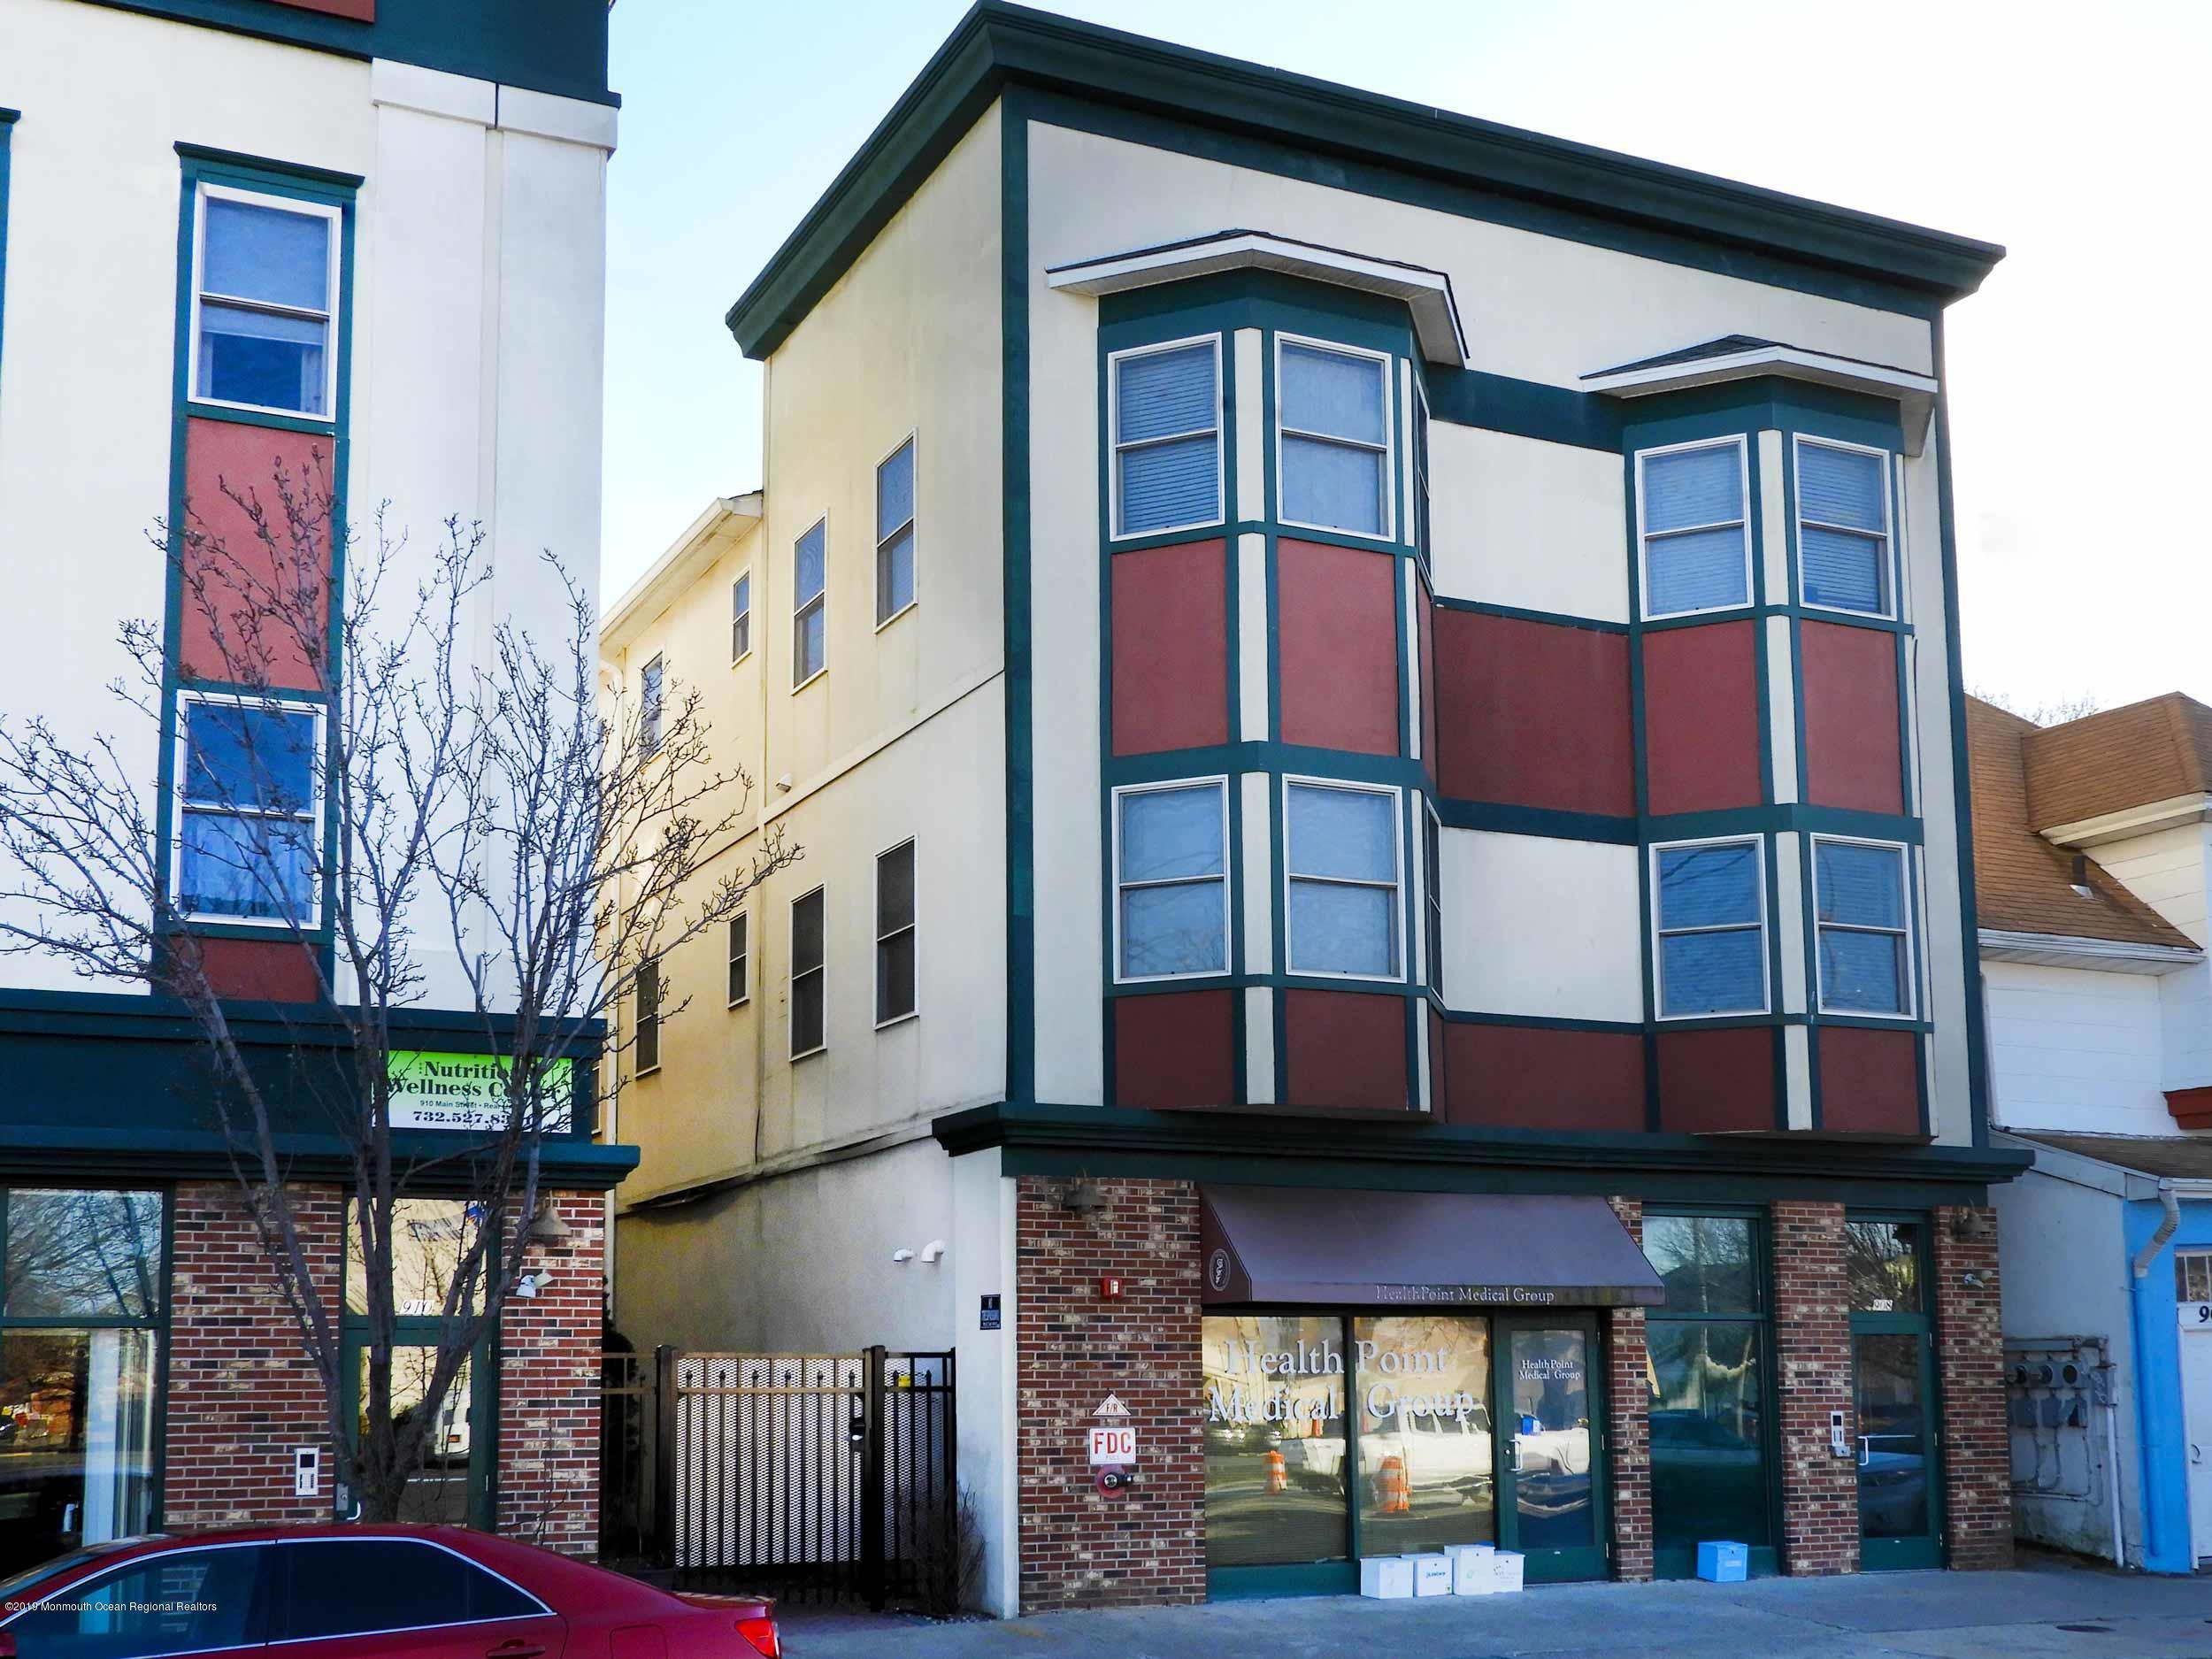 Loft style one bedroom, one bathroom condo located in Asbury Commons. Centrally located on the Main Street corridor, this property features beautiful Brazilian cherry hardwoods, 10 ft ceilings and open floor plan concept. The property also includes one off street parking space.